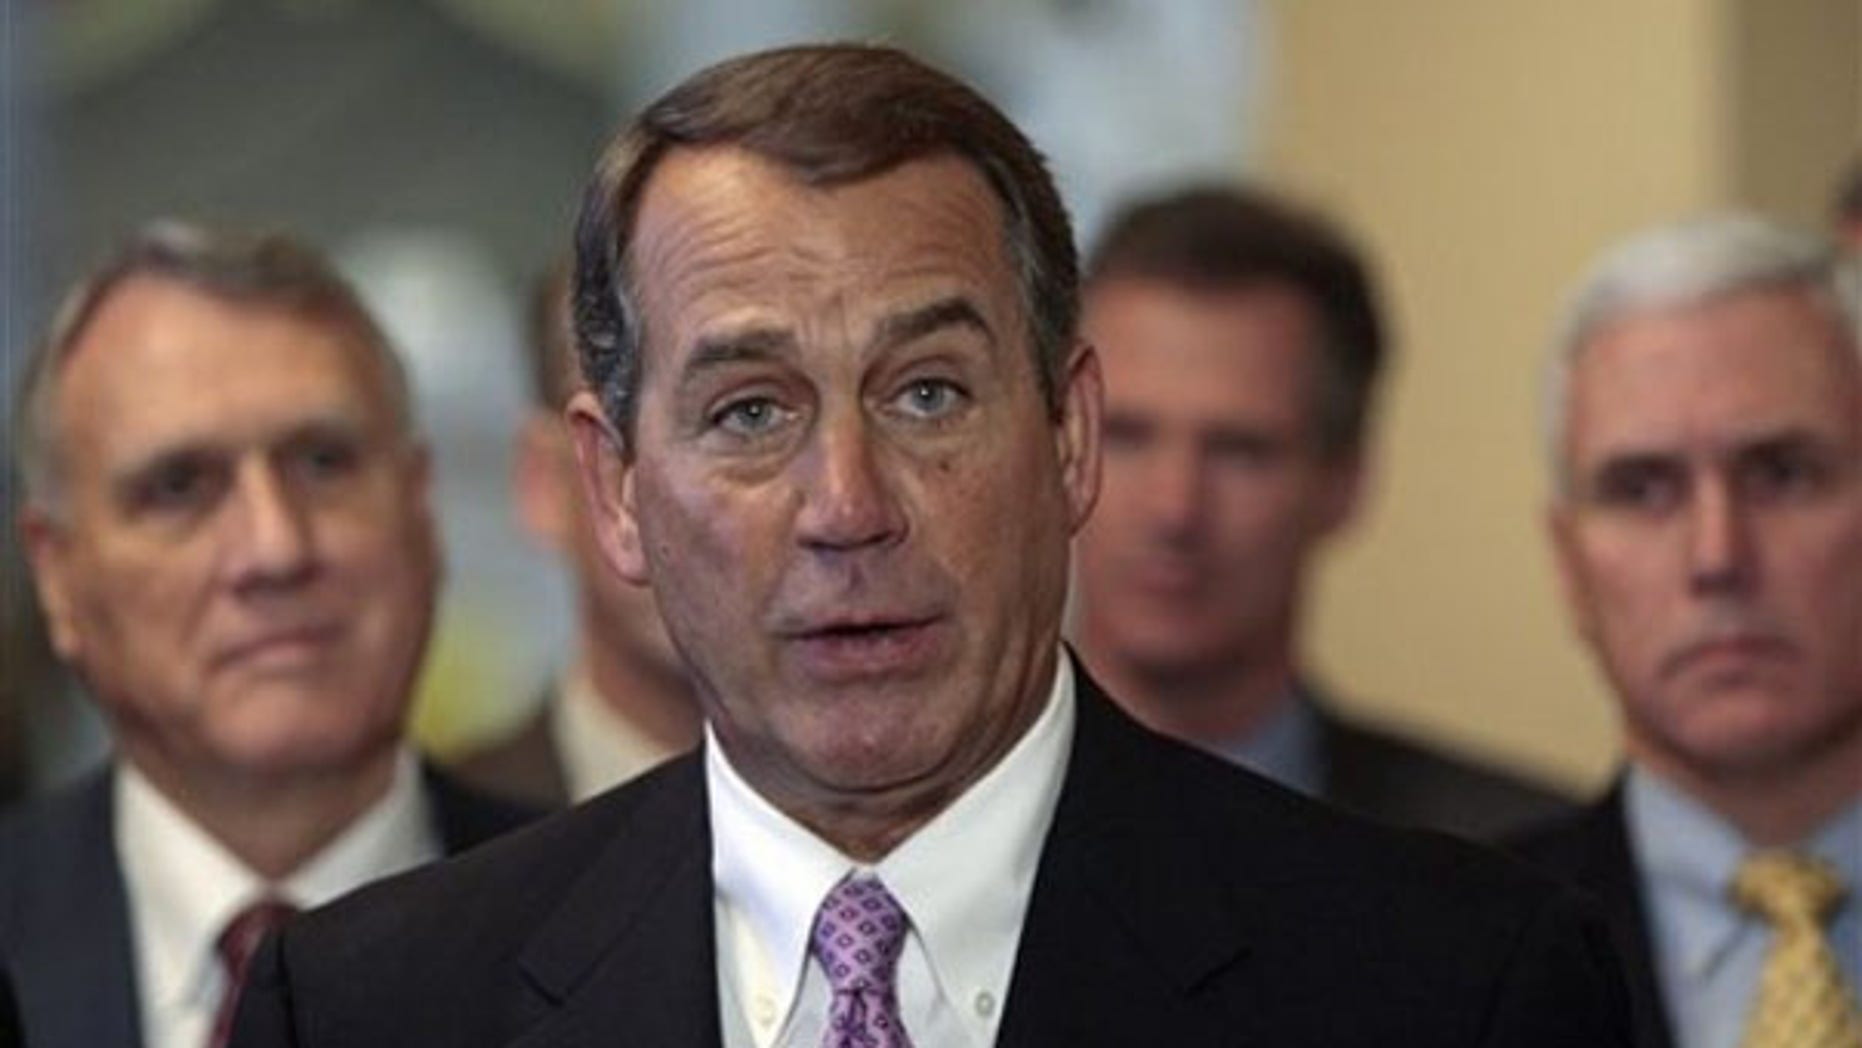 House Minority Leader John Boehner speaks to reporters, alongside other House and Senate lawmakers, on Capitol Hill March 18. (AP Photo)